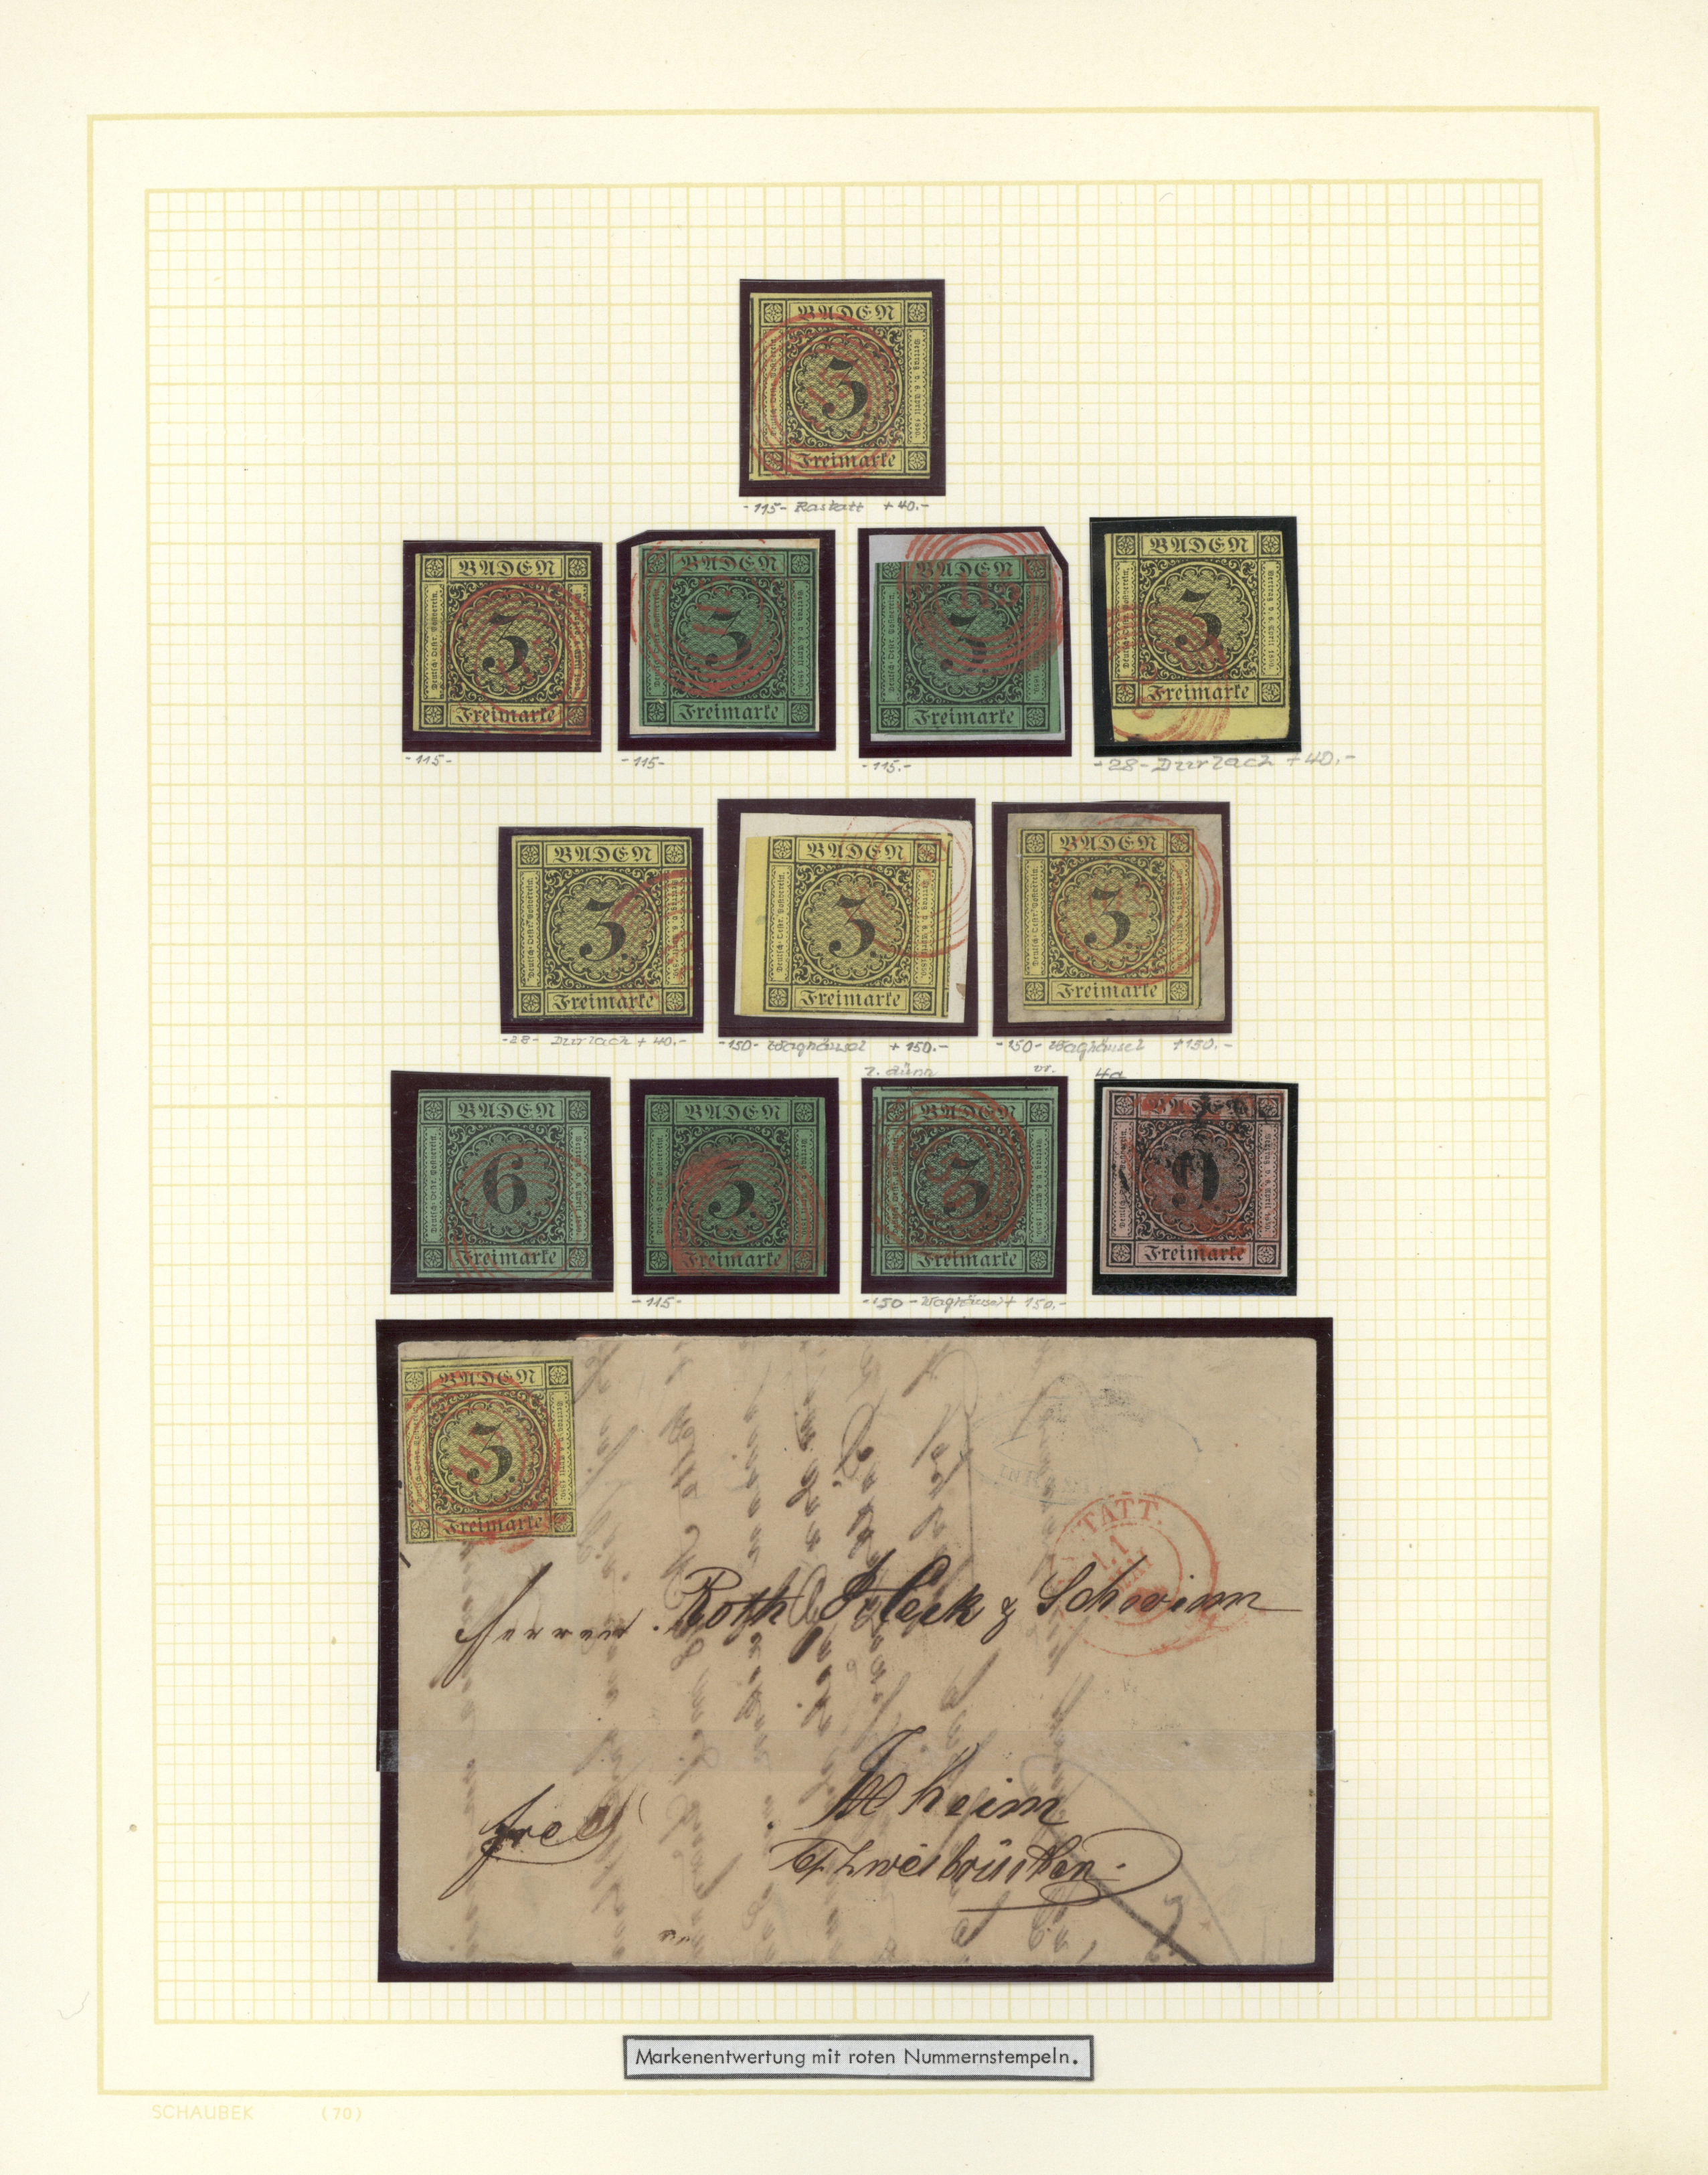 Lot 36224 - Baden - Marken und Briefe  -  Auktionshaus Christoph Gärtner GmbH & Co. KG Collections Germany,  Collections Supplement, Surprise boxes #39 Day 7